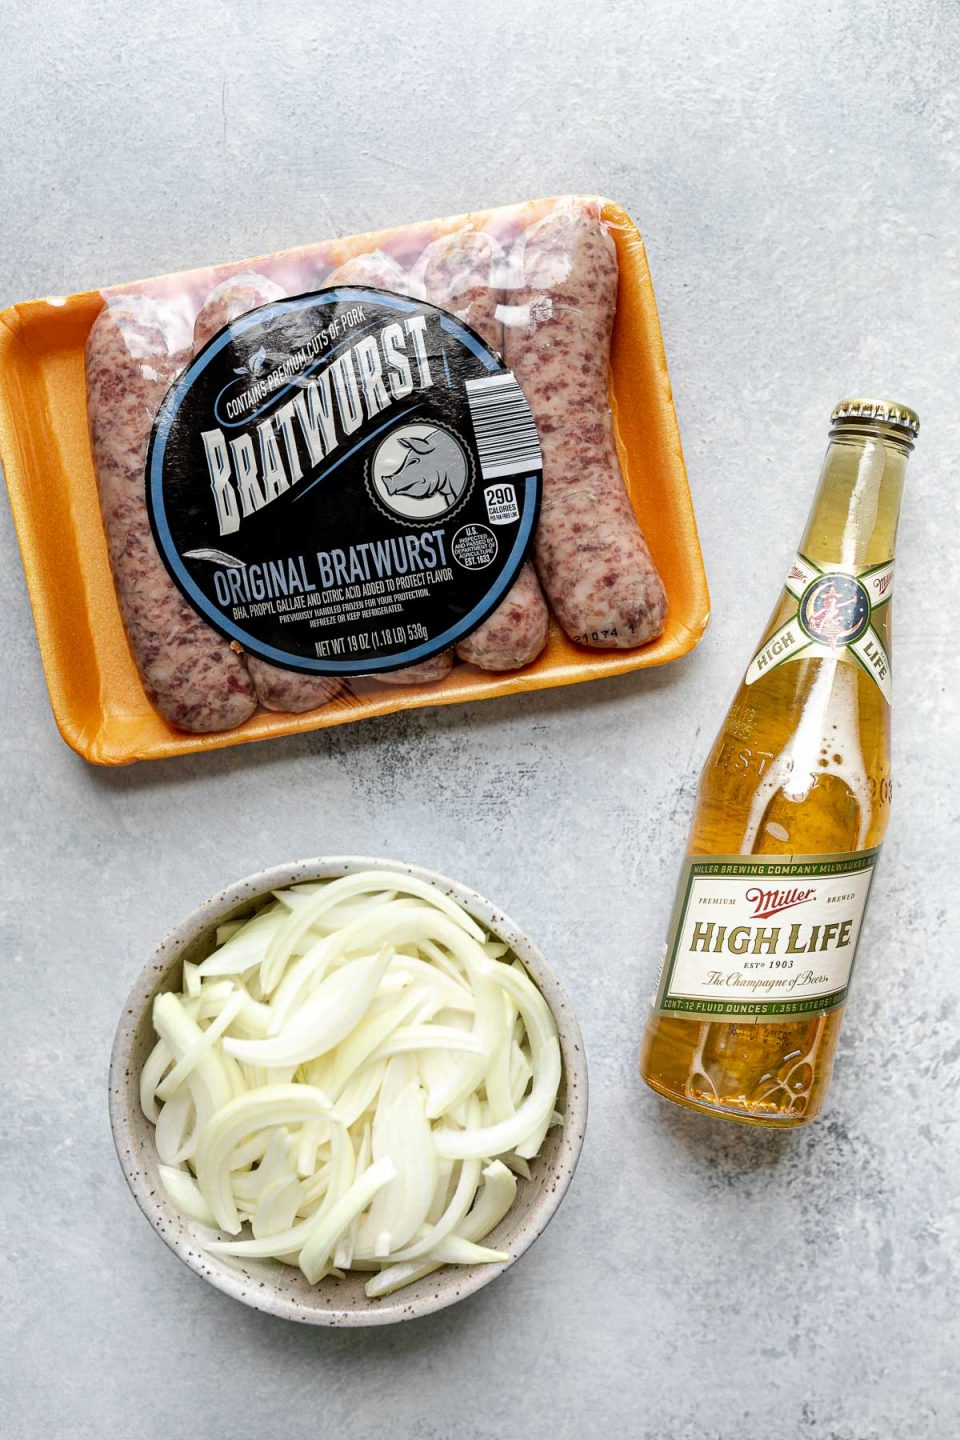 Grilled beer brats ingredients arranged on a light blue surface: Bratwurst from ALDI, Miller High Life, & a bowl of thinly sliced onion.